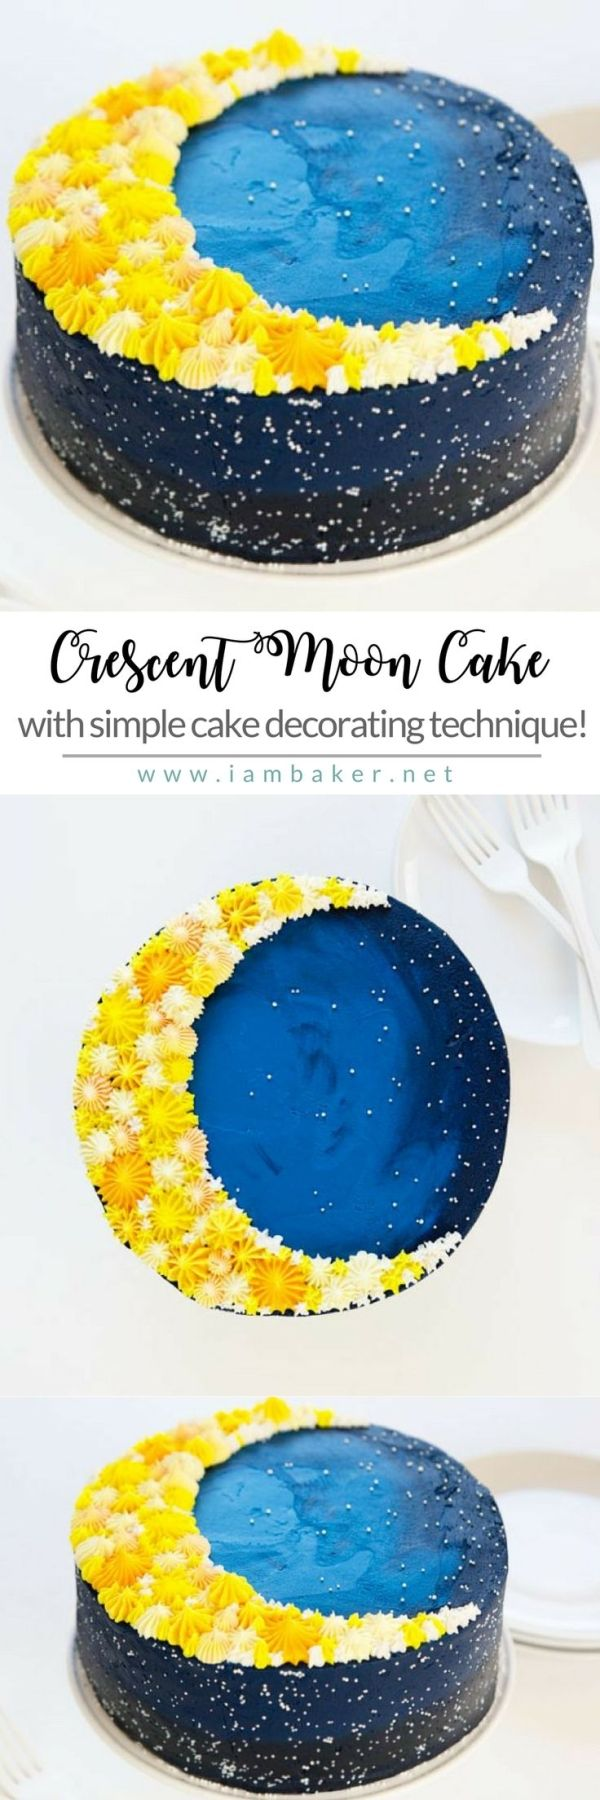 Here's a step by step on how to bake this easy cake recipe with a simple decorating technique- Crescent Moon Cake! All you need are some yellow and blue buttercream frosting to create awesome cake design! Don't forget to check our website for more easy dessert recipes by @iambaker #iambaker #iambakerdessert #iambakercake #cakedecorating by leigh